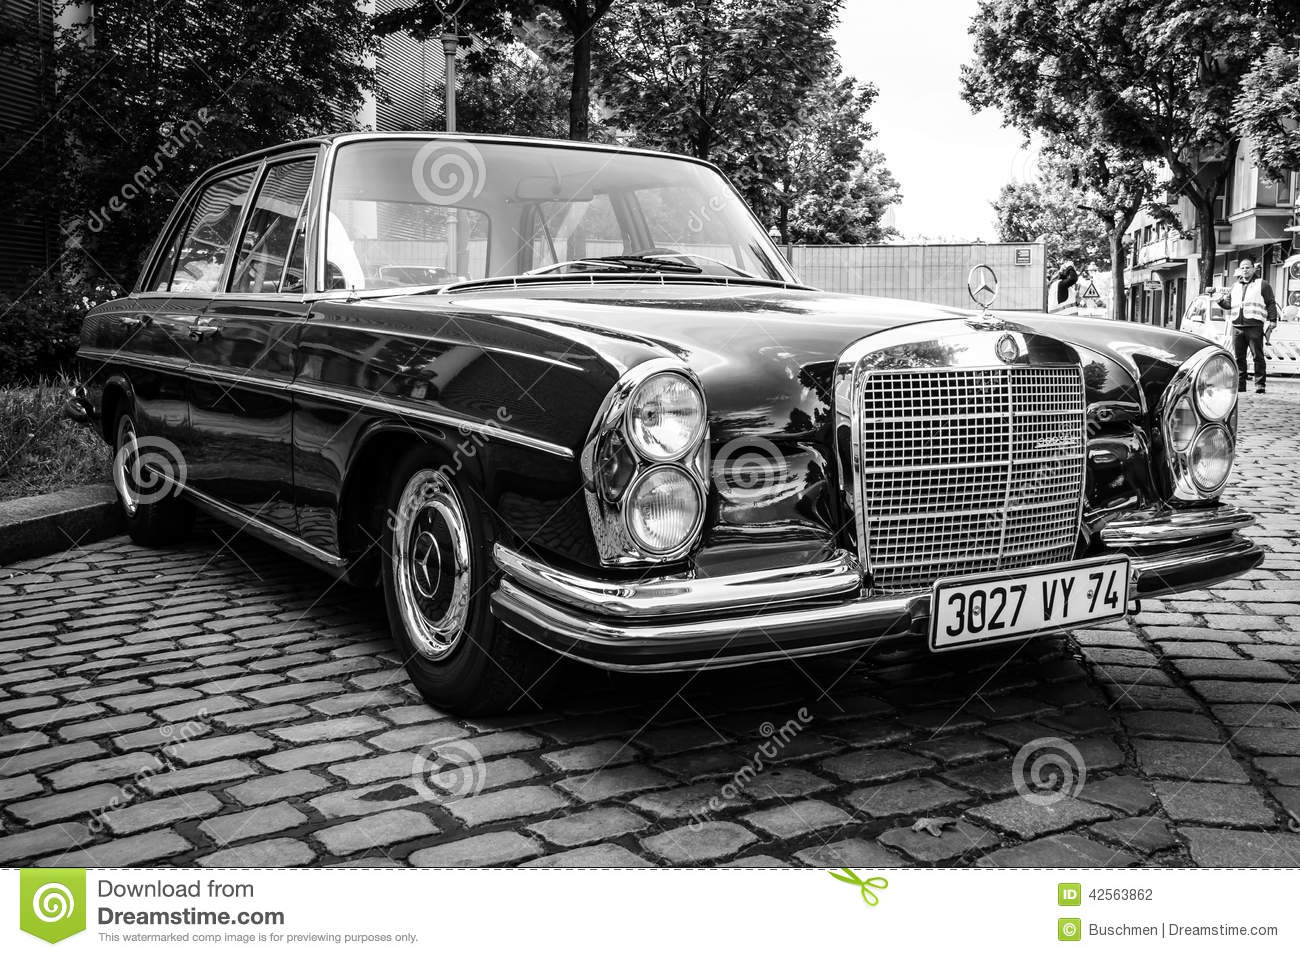 mercedes benz 300sel w108 w109 editorial photography image 42563862. Black Bedroom Furniture Sets. Home Design Ideas